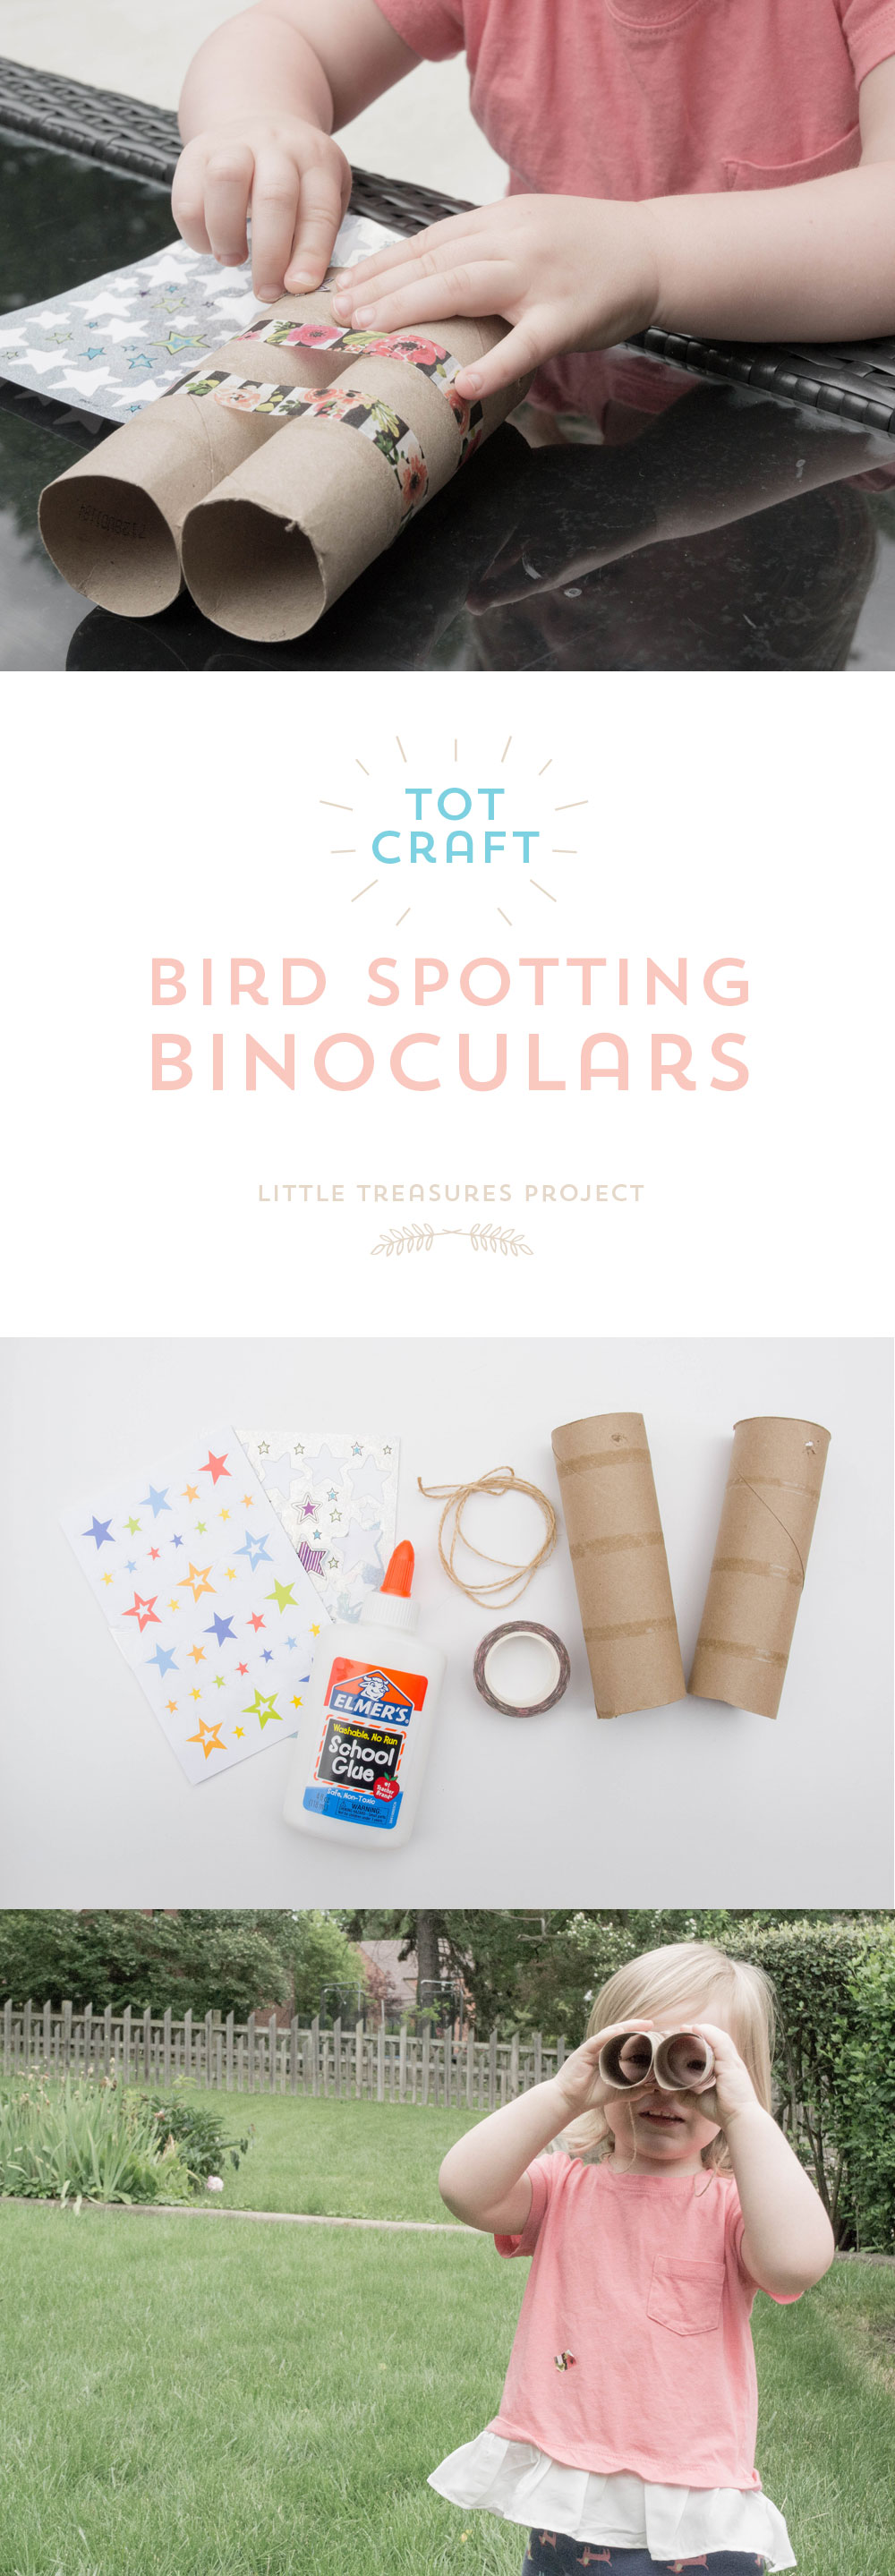 Little Treasures Project - Tot Craft | Bird Spotting Binoculars